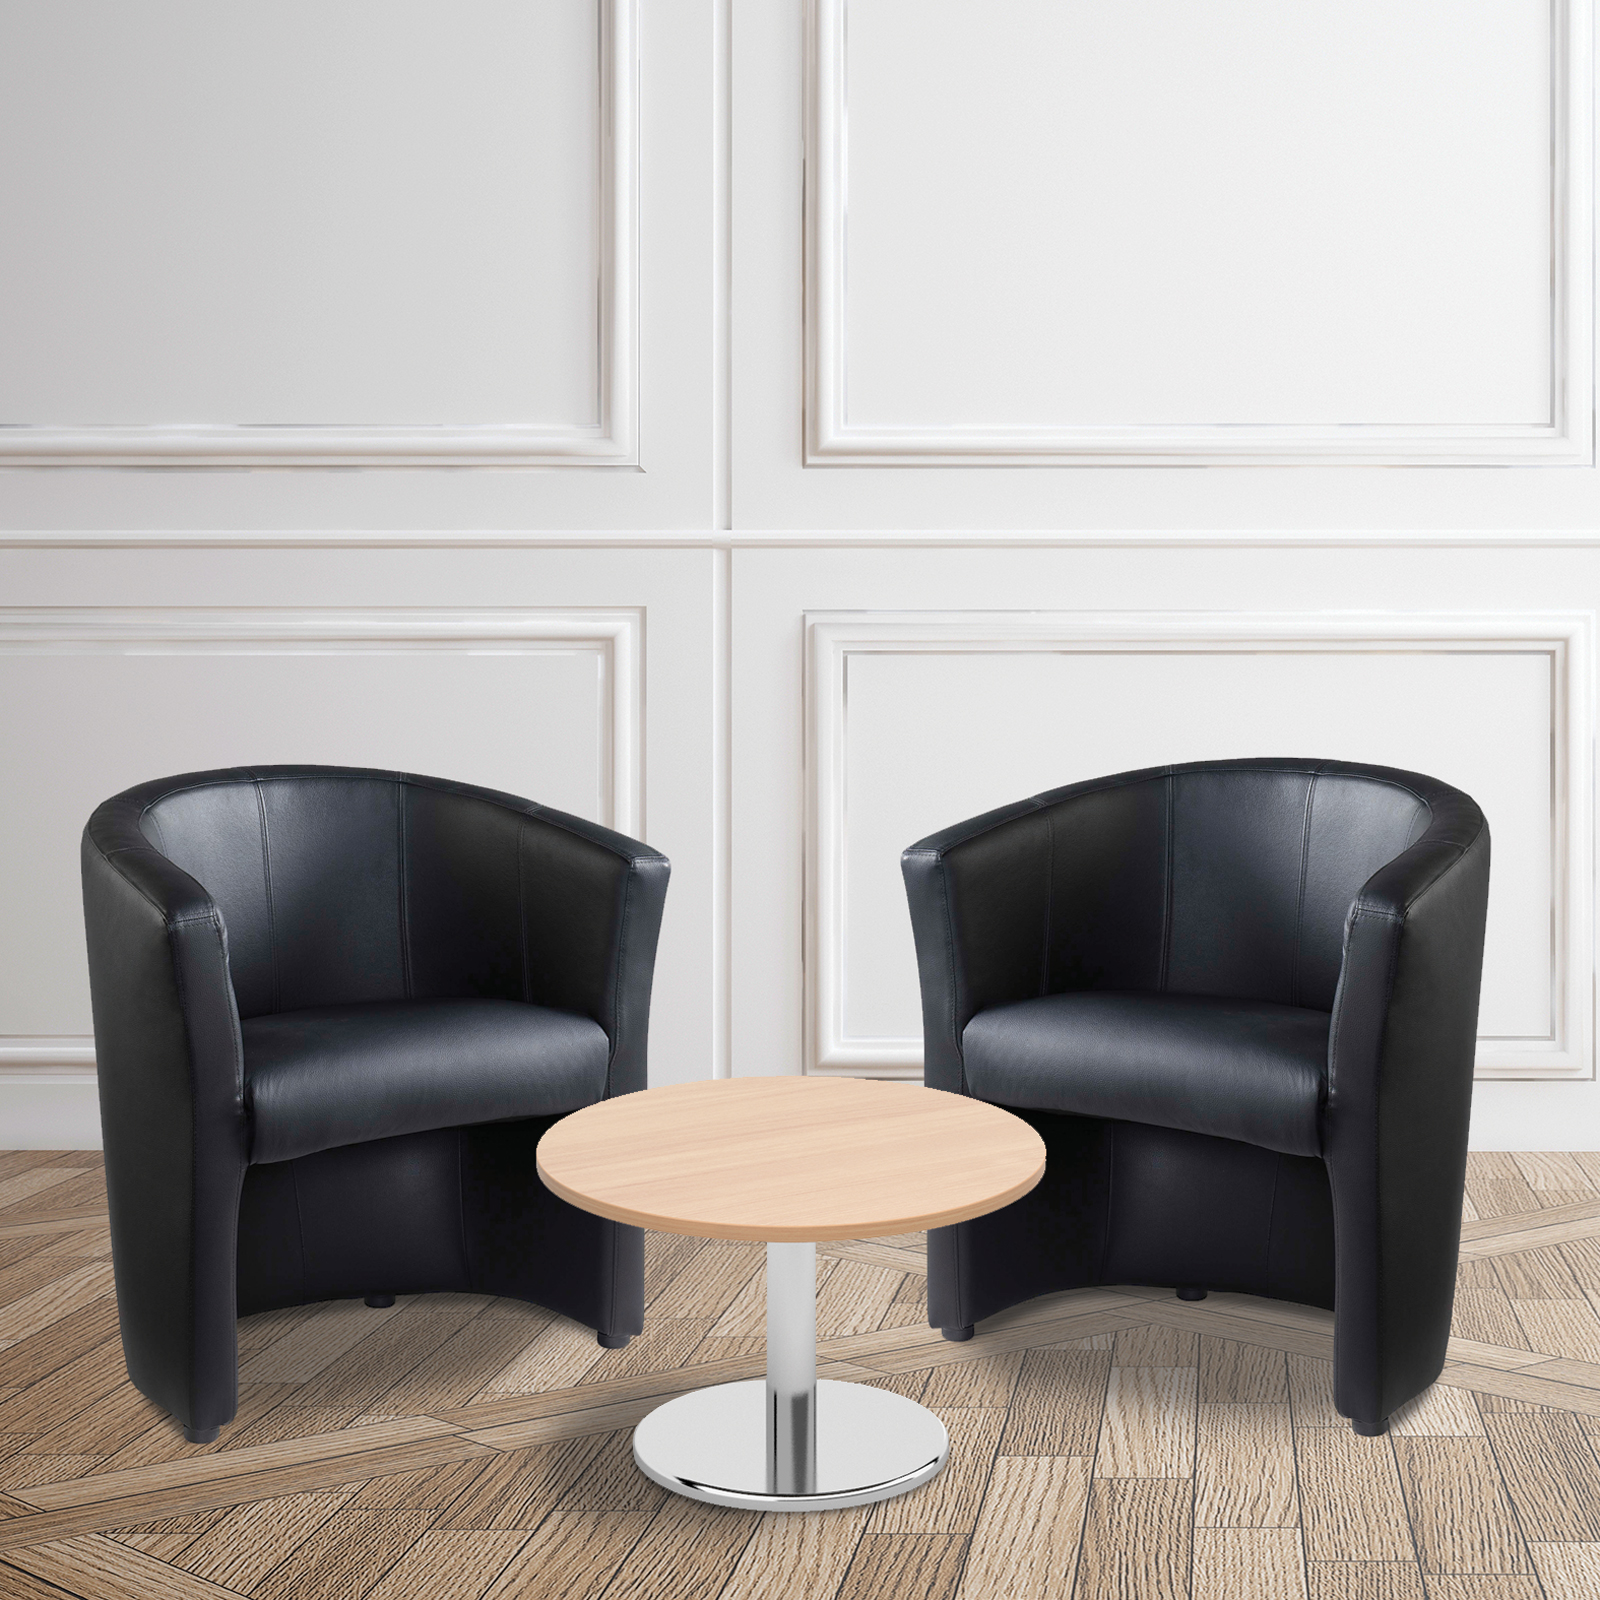 Reception Chairs Bundle deal - 2 x London tub chairs with 600mm coffee table - beech